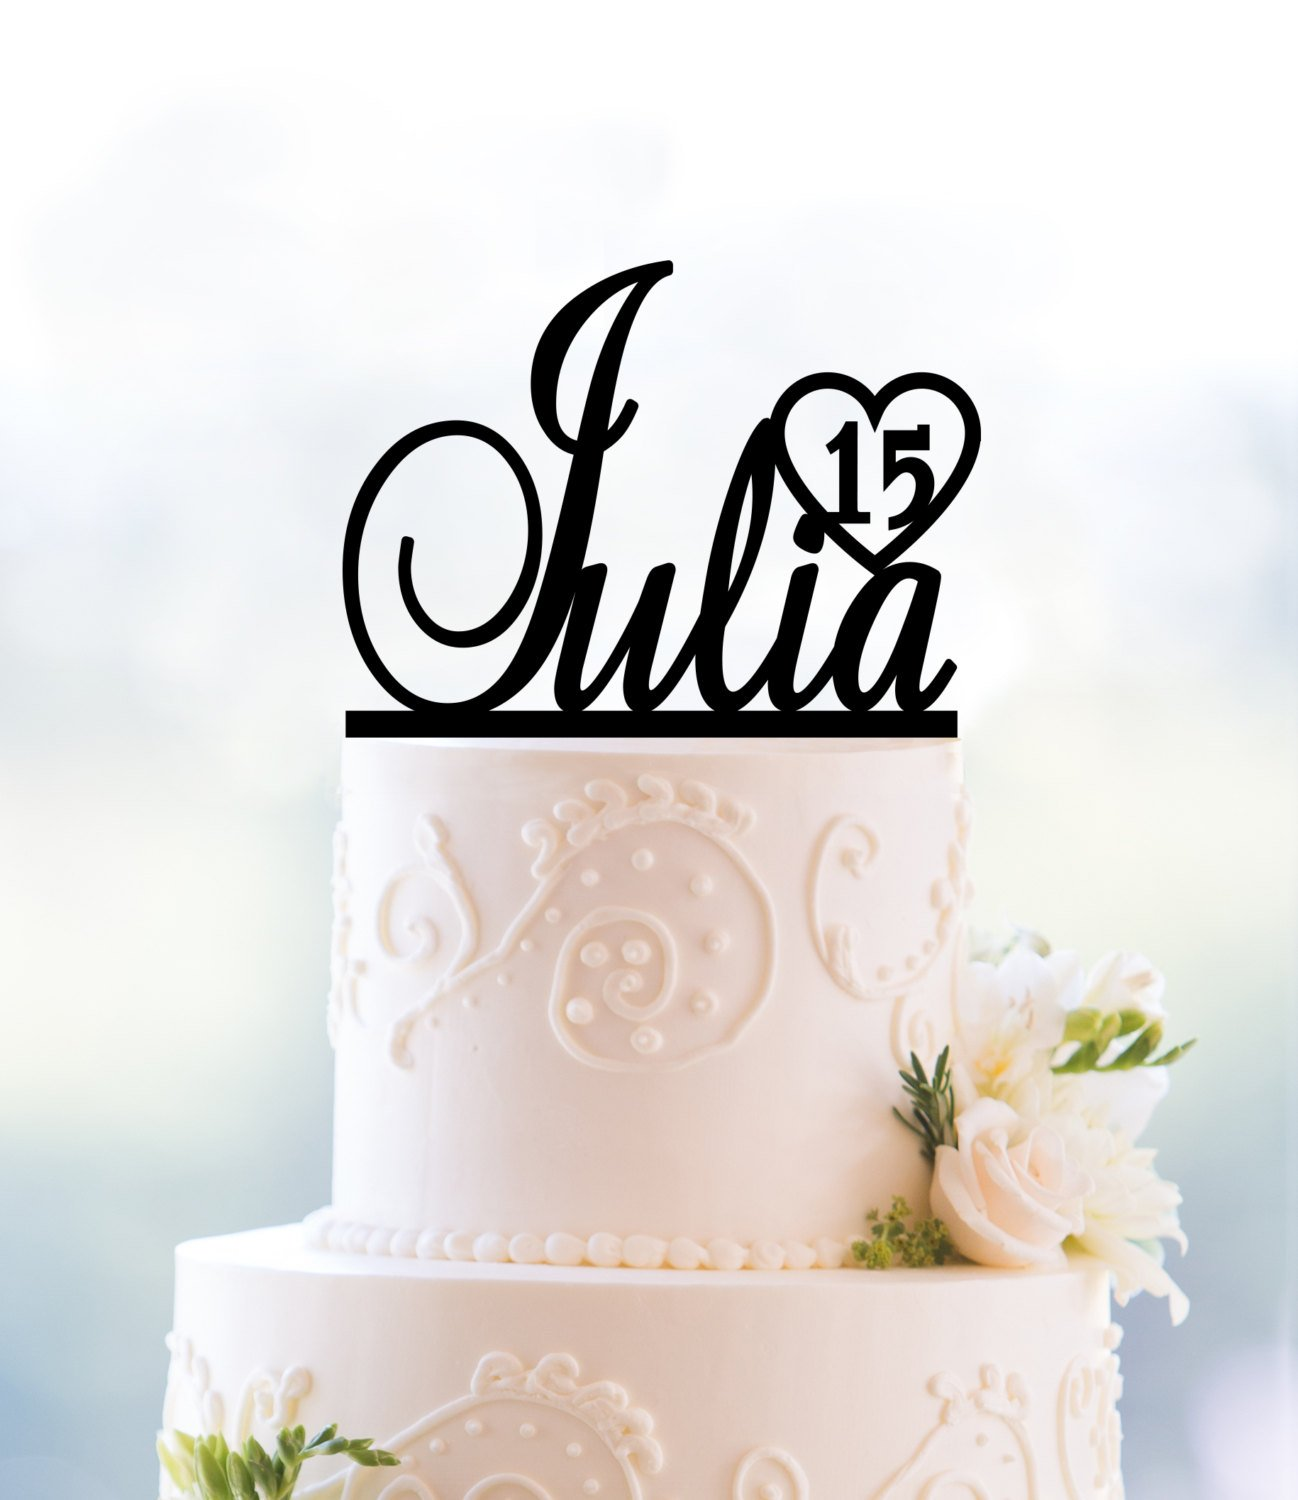 Personalized Birthday Cake Topper First Name Number Party Decor Sweet 16 T091